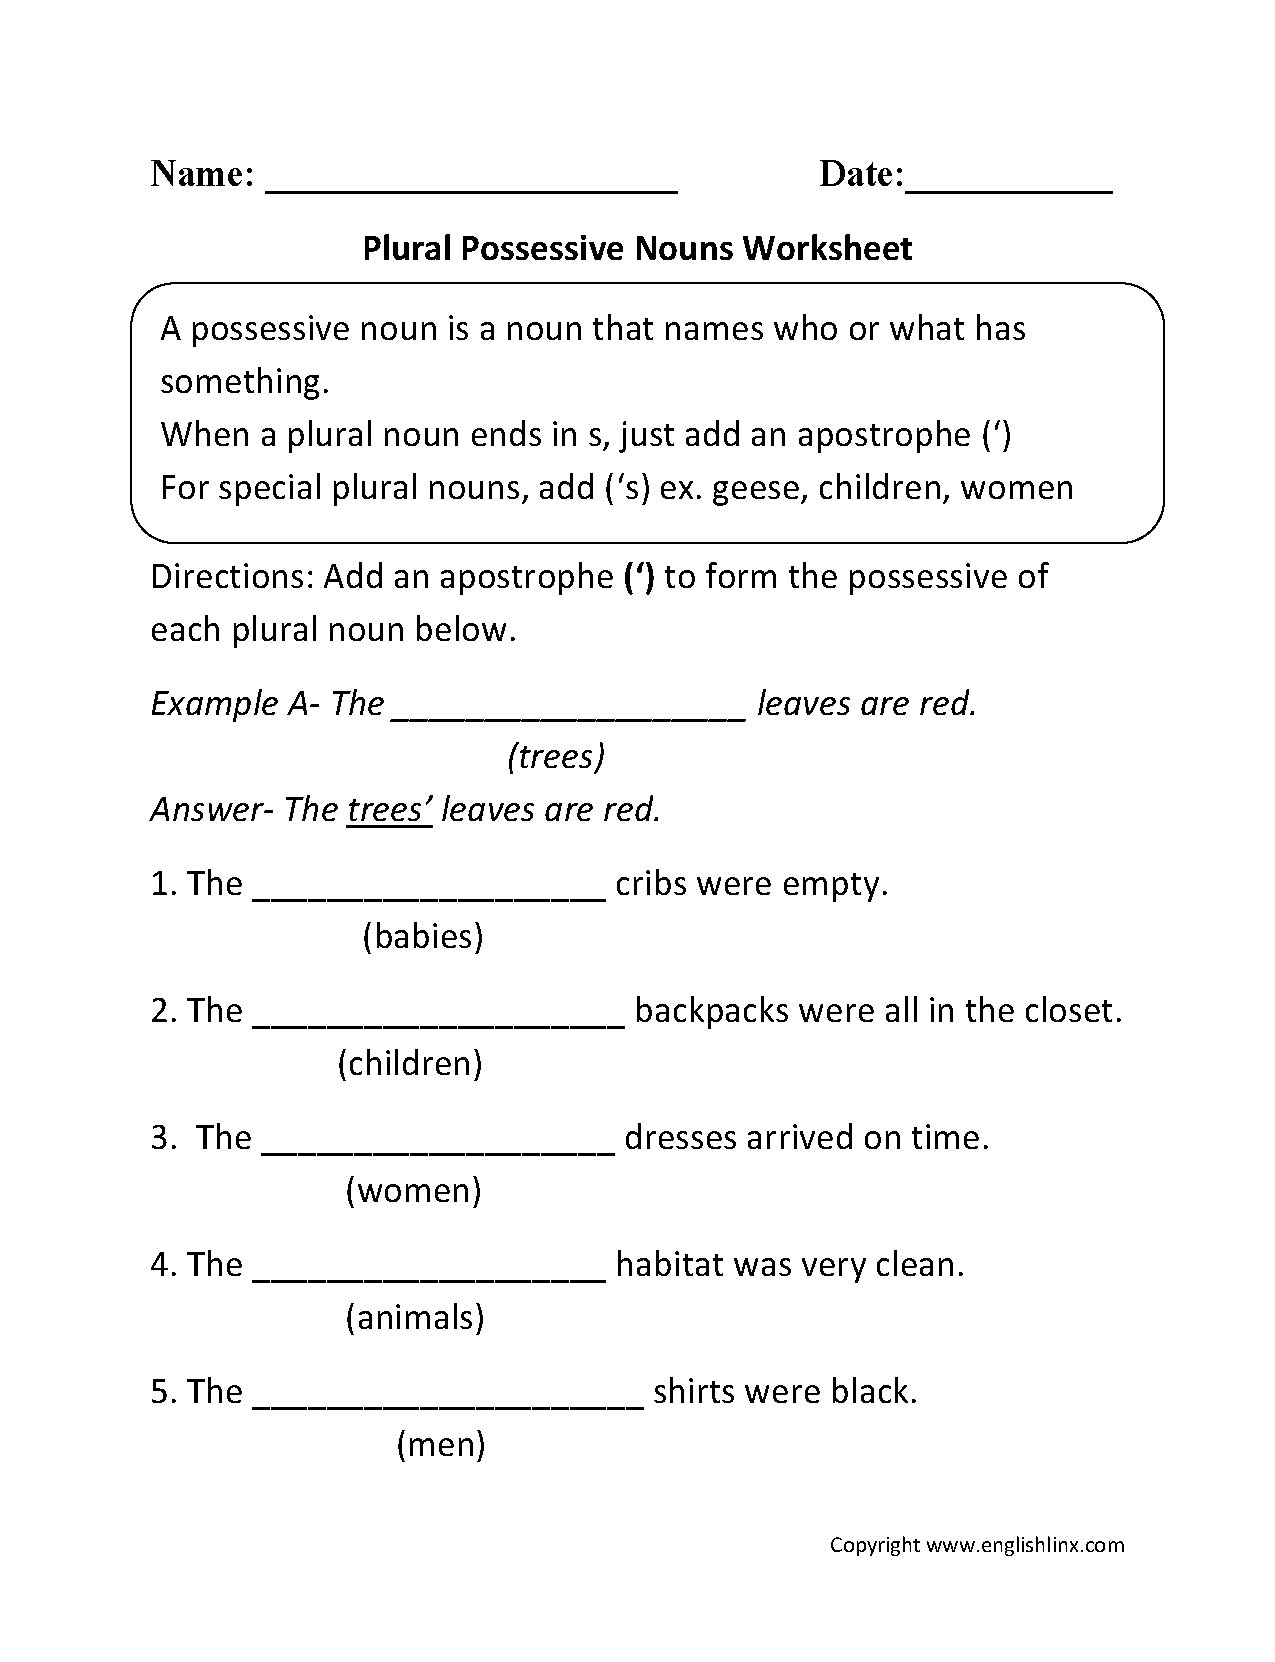 Weirdmailus  Surprising Nouns Worksheets  Possessive Nouns Worksheets With Extraordinary Possessive Nouns Worksheets With Amazing Balancing Chemical Formulas Worksheet Also Th Grade Poetry Worksheets In Addition Reflection On Coordinate Plane Worksheet And Punctuation Worksheets For First Grade As Well As Free Anger Management Worksheets For Youth Additionally Human Body Labeling Worksheet From Englishlinxcom With Weirdmailus  Extraordinary Nouns Worksheets  Possessive Nouns Worksheets With Amazing Possessive Nouns Worksheets And Surprising Balancing Chemical Formulas Worksheet Also Th Grade Poetry Worksheets In Addition Reflection On Coordinate Plane Worksheet From Englishlinxcom